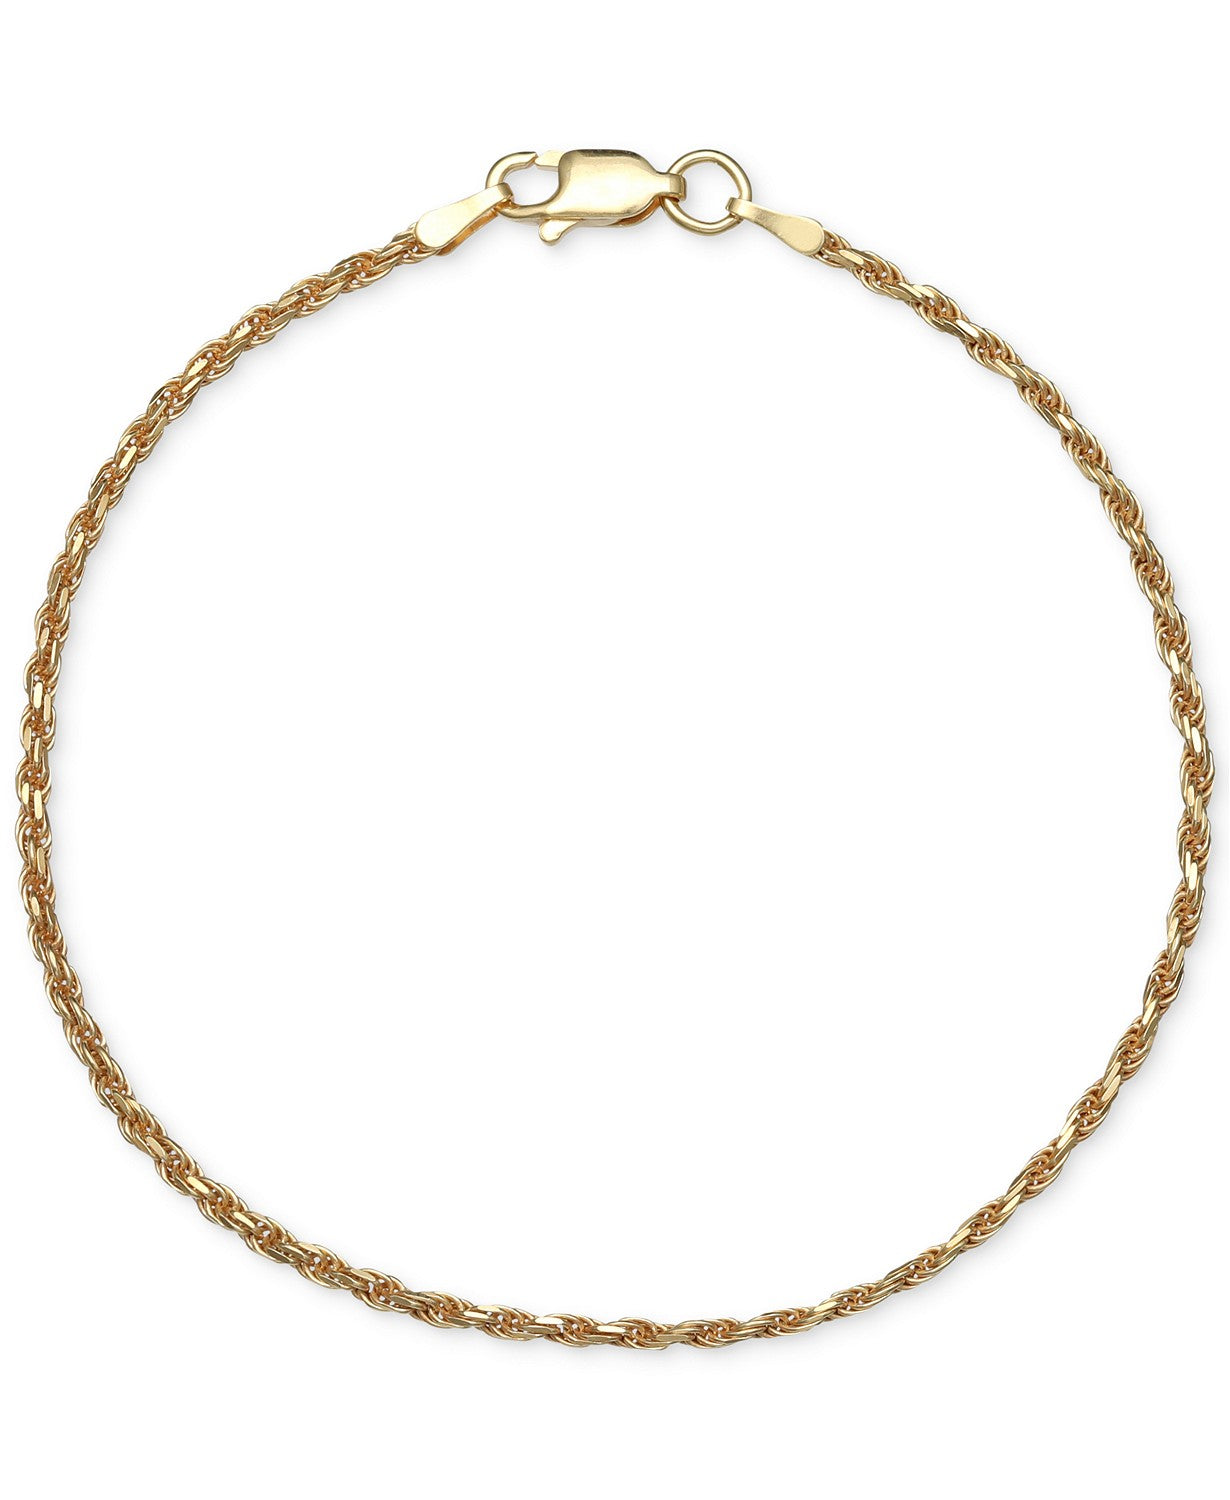 Giani Bernini Rope Chain Bracelet in 18k Gold-Plated Sterling Silver